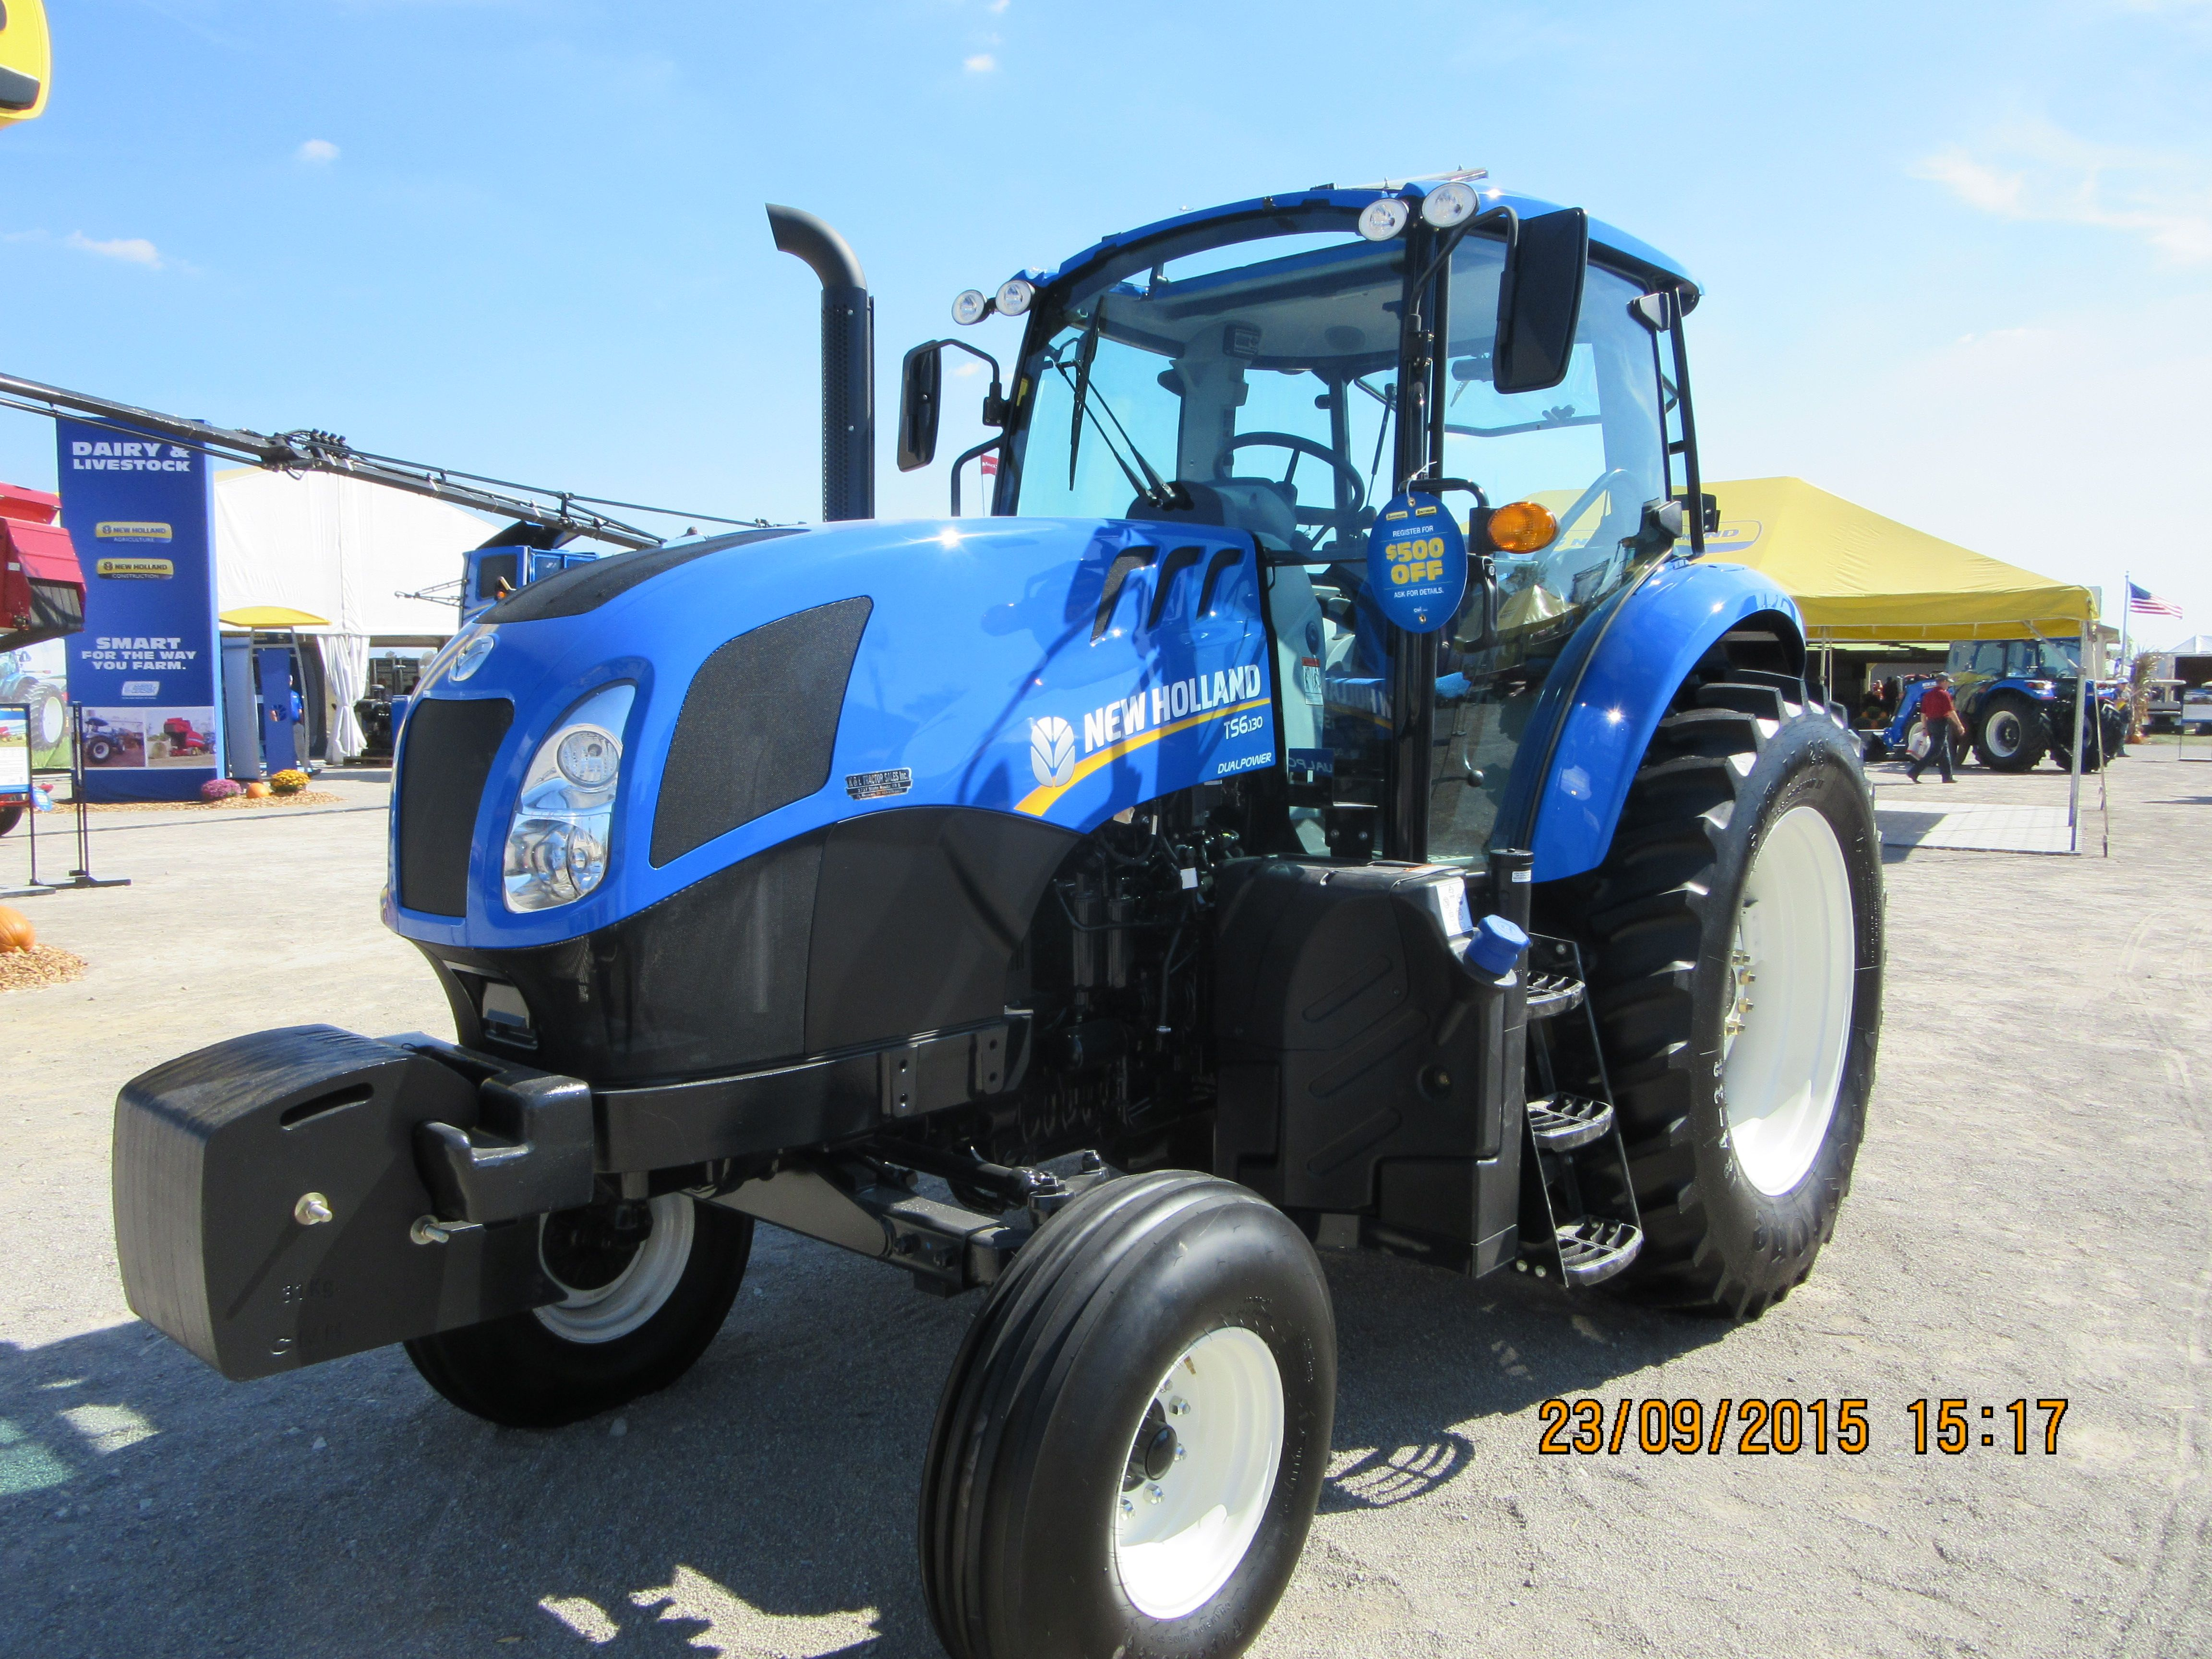 New Holland T6.130